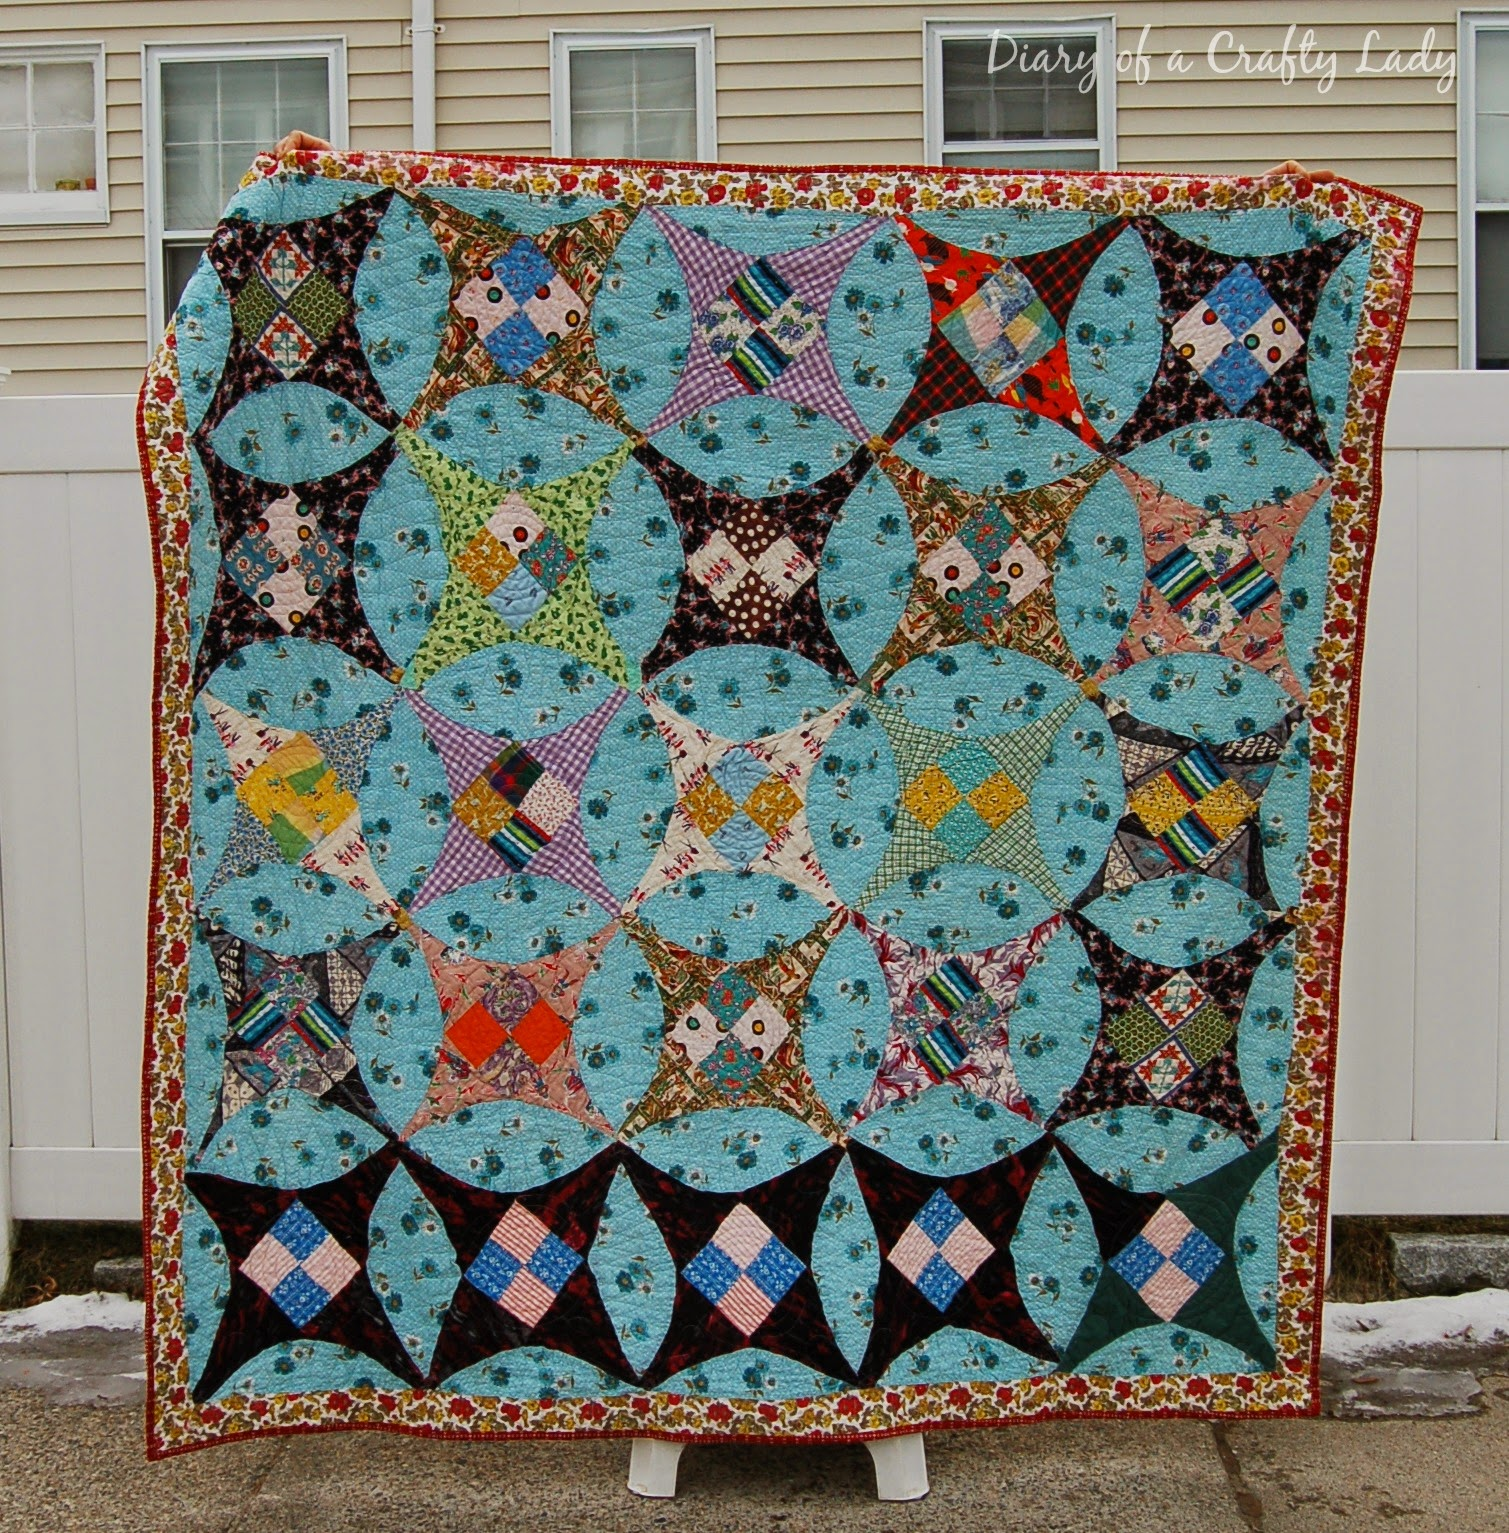 Diary of a crafty lady my love affair with antique quilt tops for What to do with an old quilt